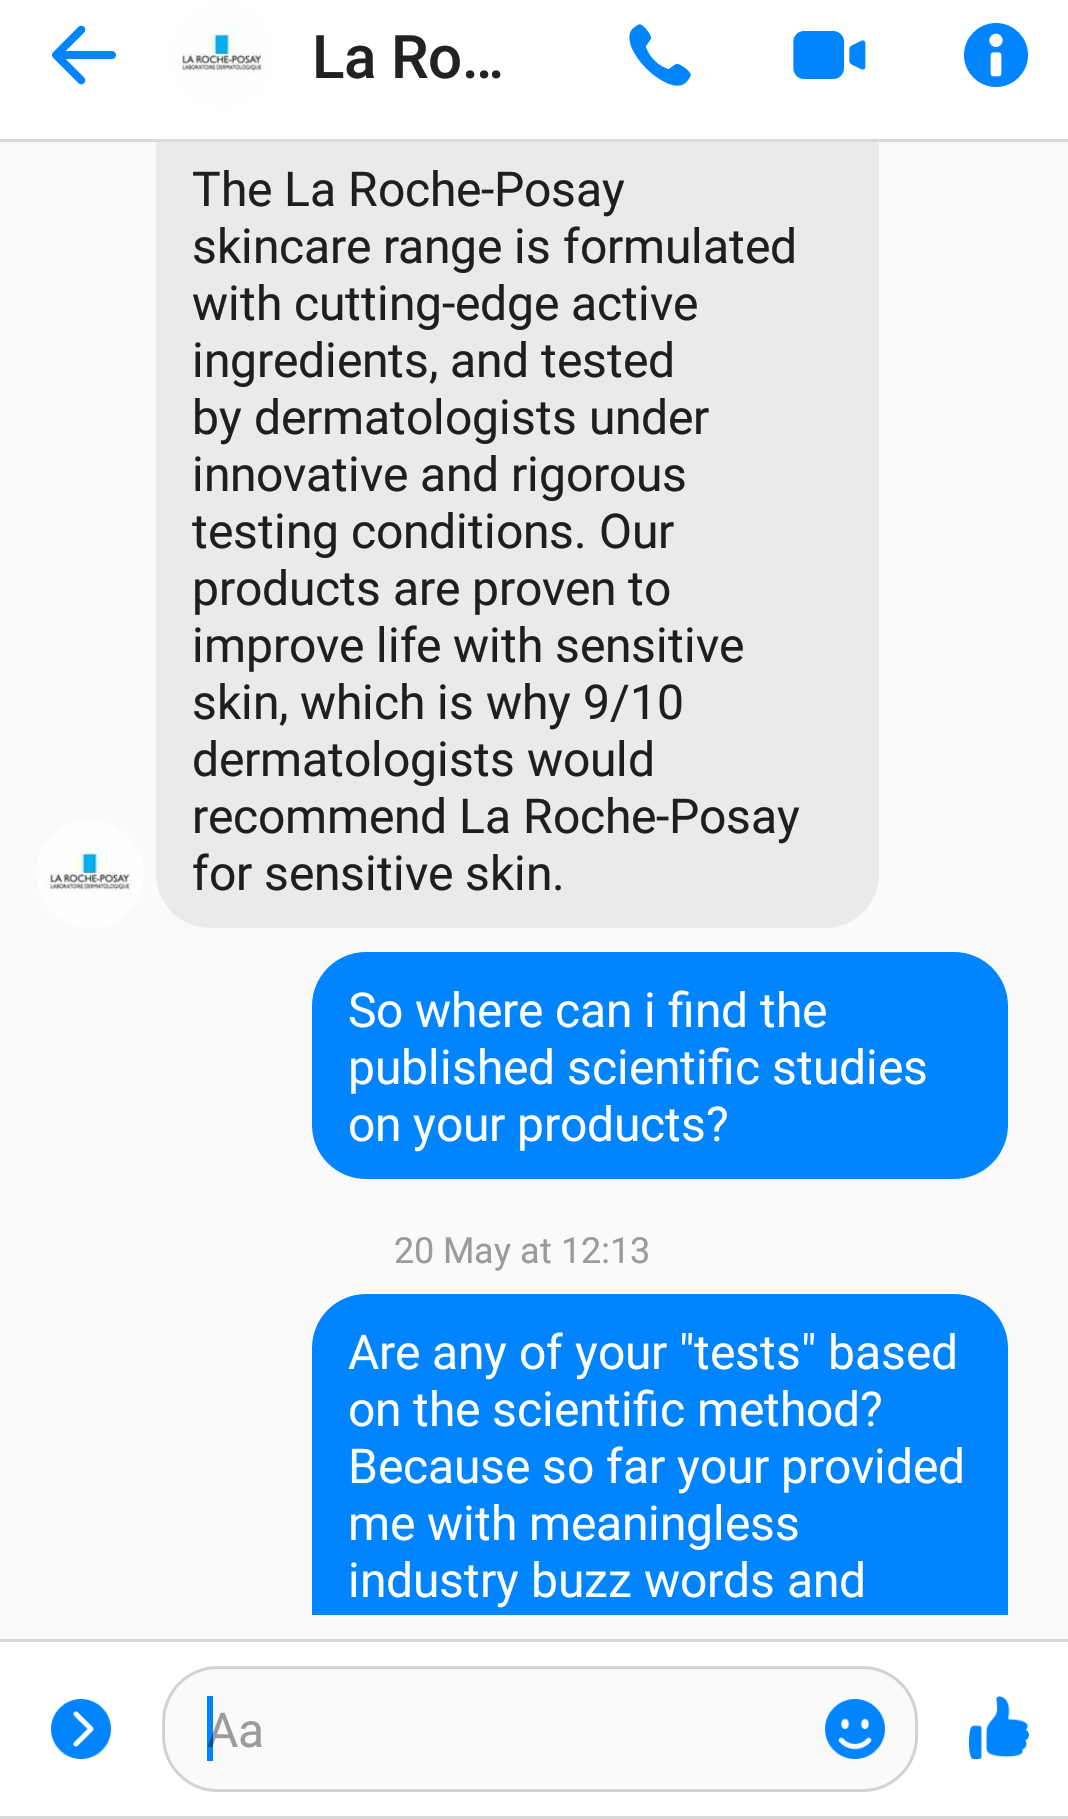 A screenshot of my social media conversation with La Roche-Posay to represent the topic of the article - A Moisturiser Review: Complex Skin And Mental Health